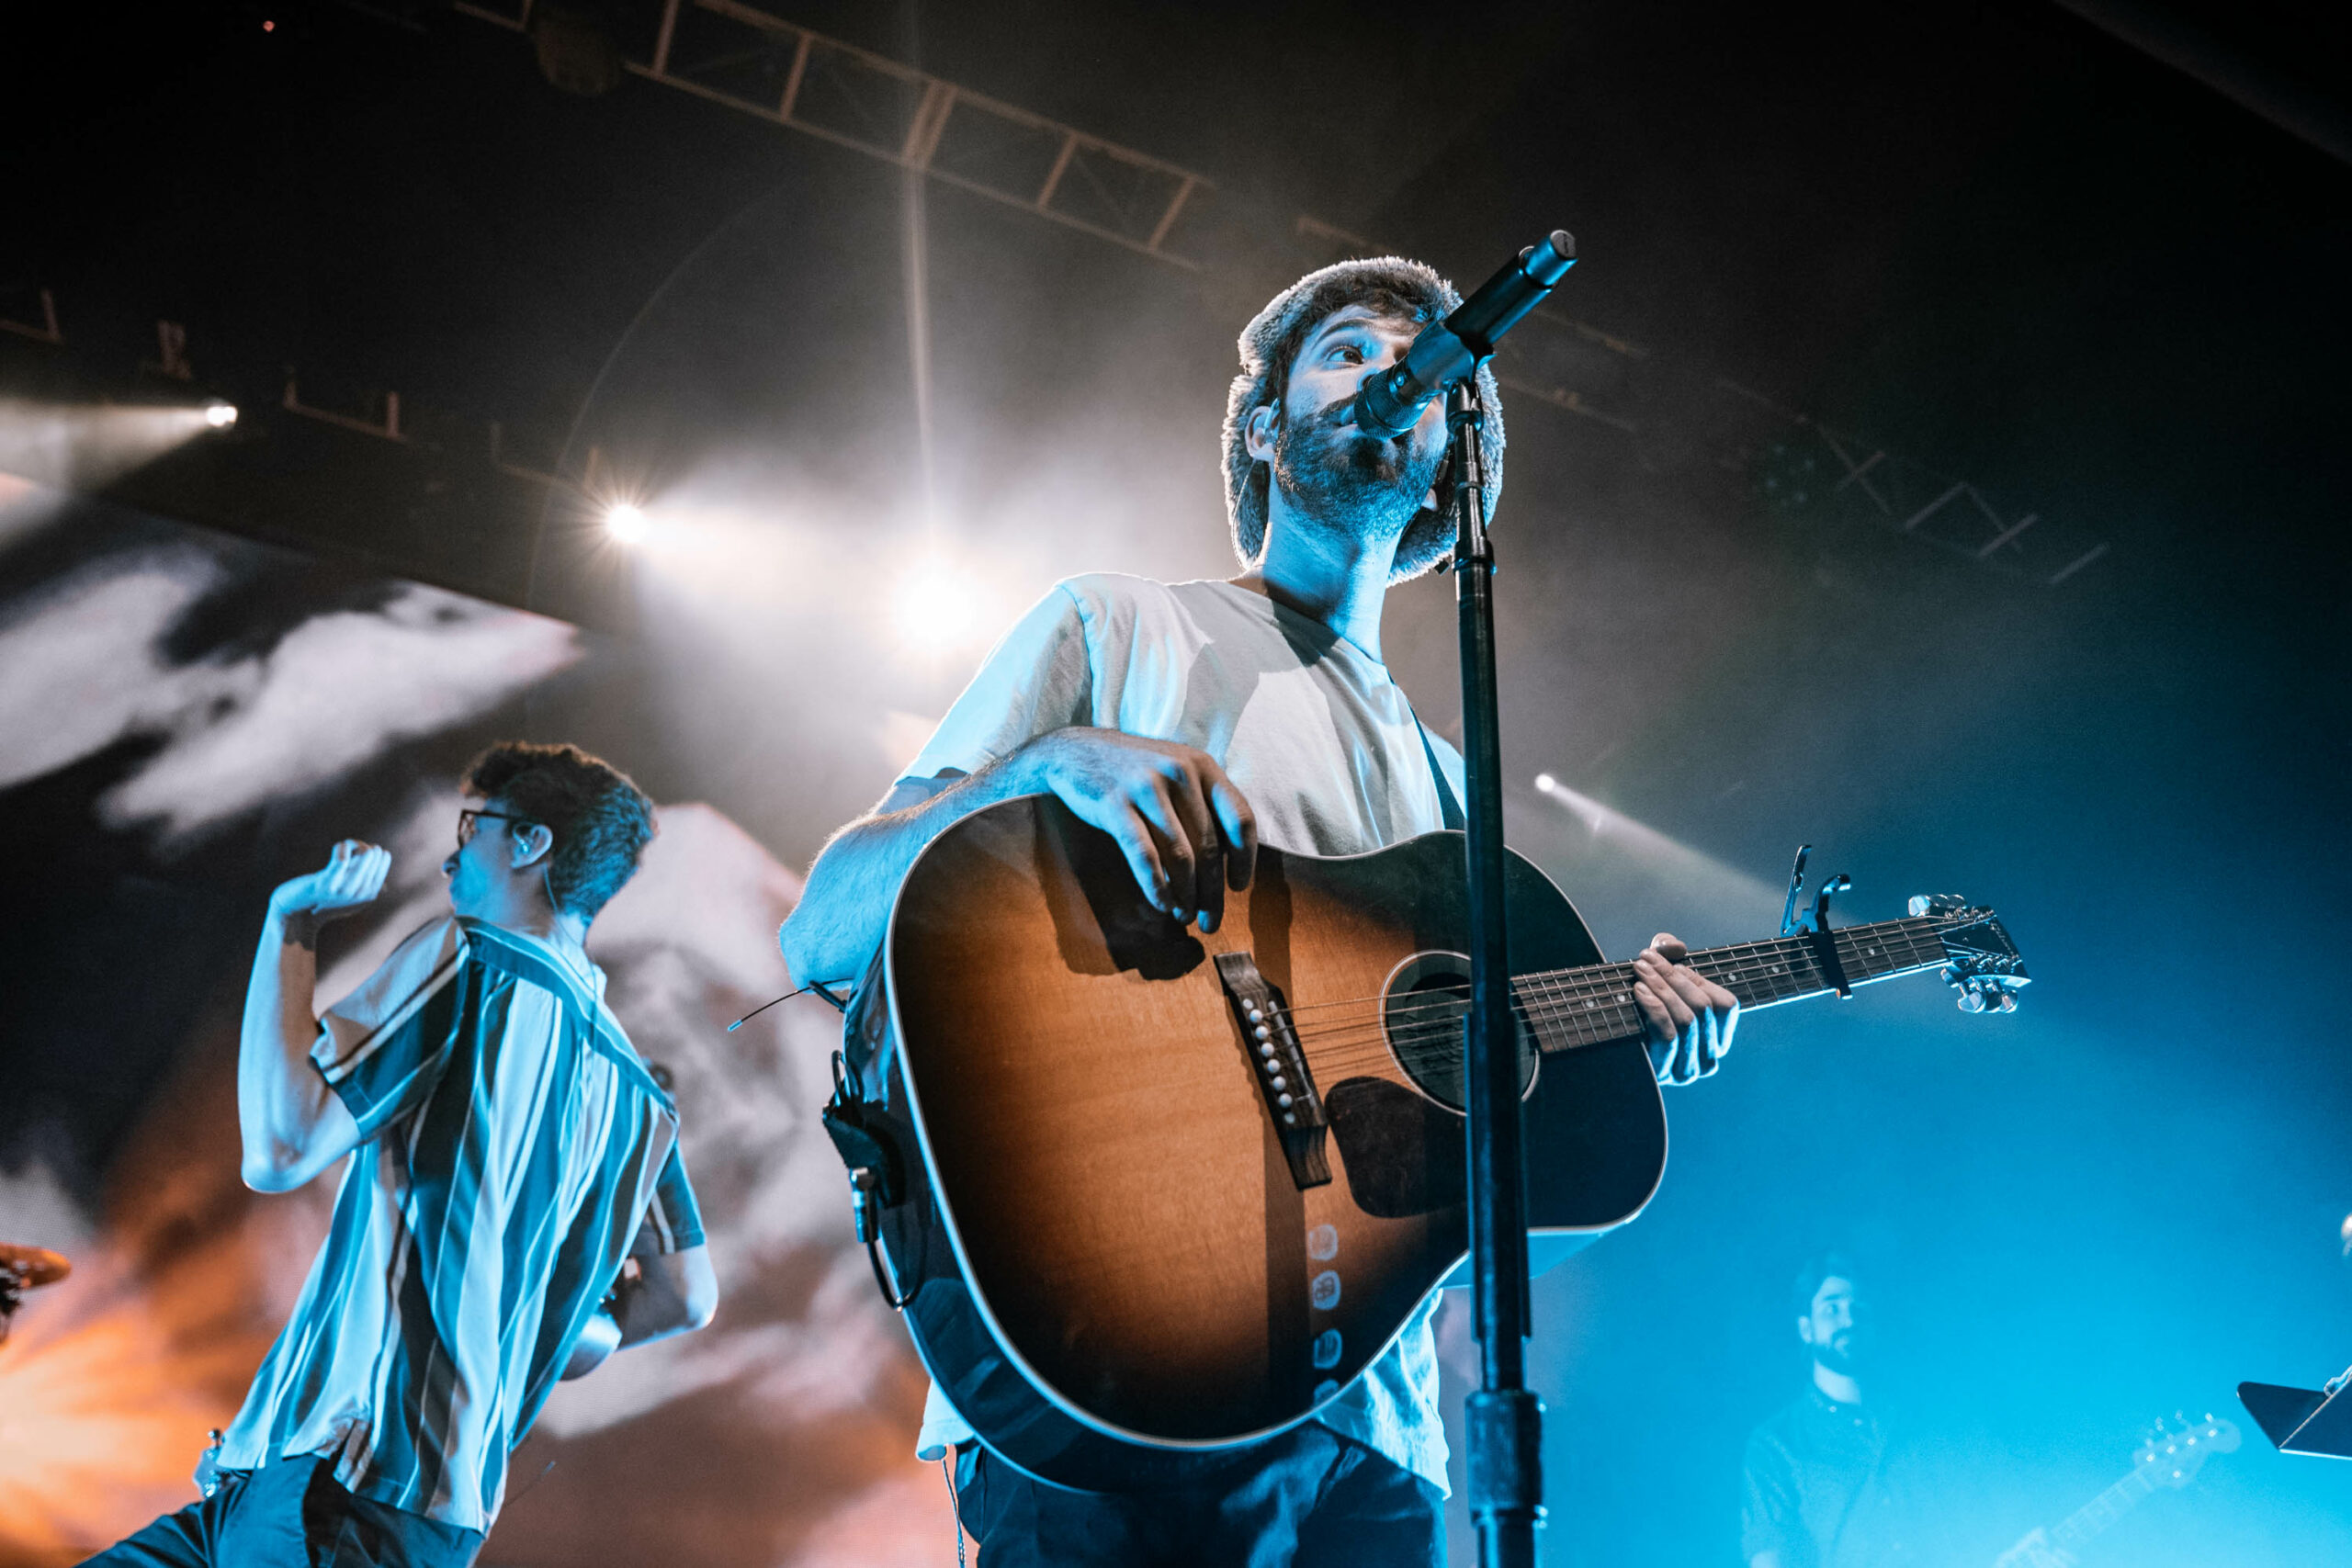 AJR - O2 Forum London - GIG GOER 2019